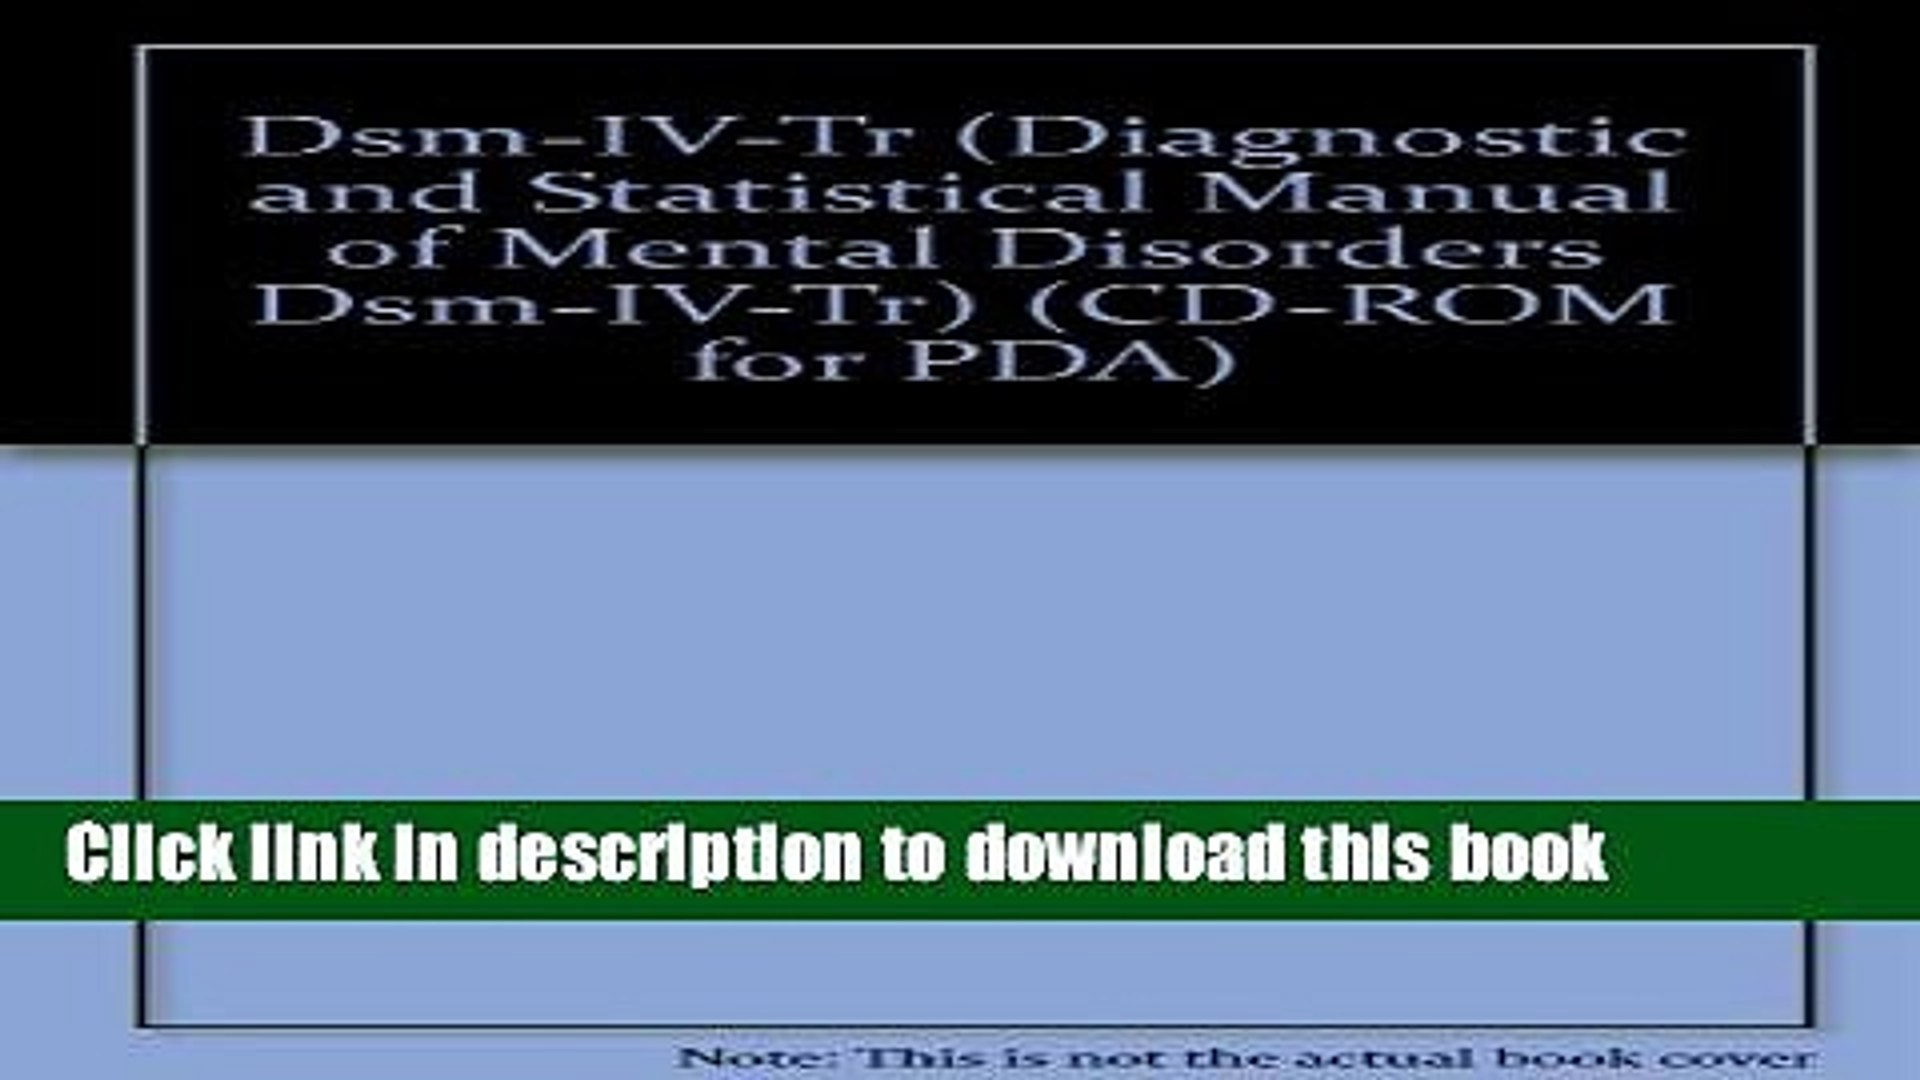 Read Dsm-IV-Tr: Diagnostic and Statistical Manual of Mental Disorders Dsm-IV-Tr (CD-ROM for PDA)